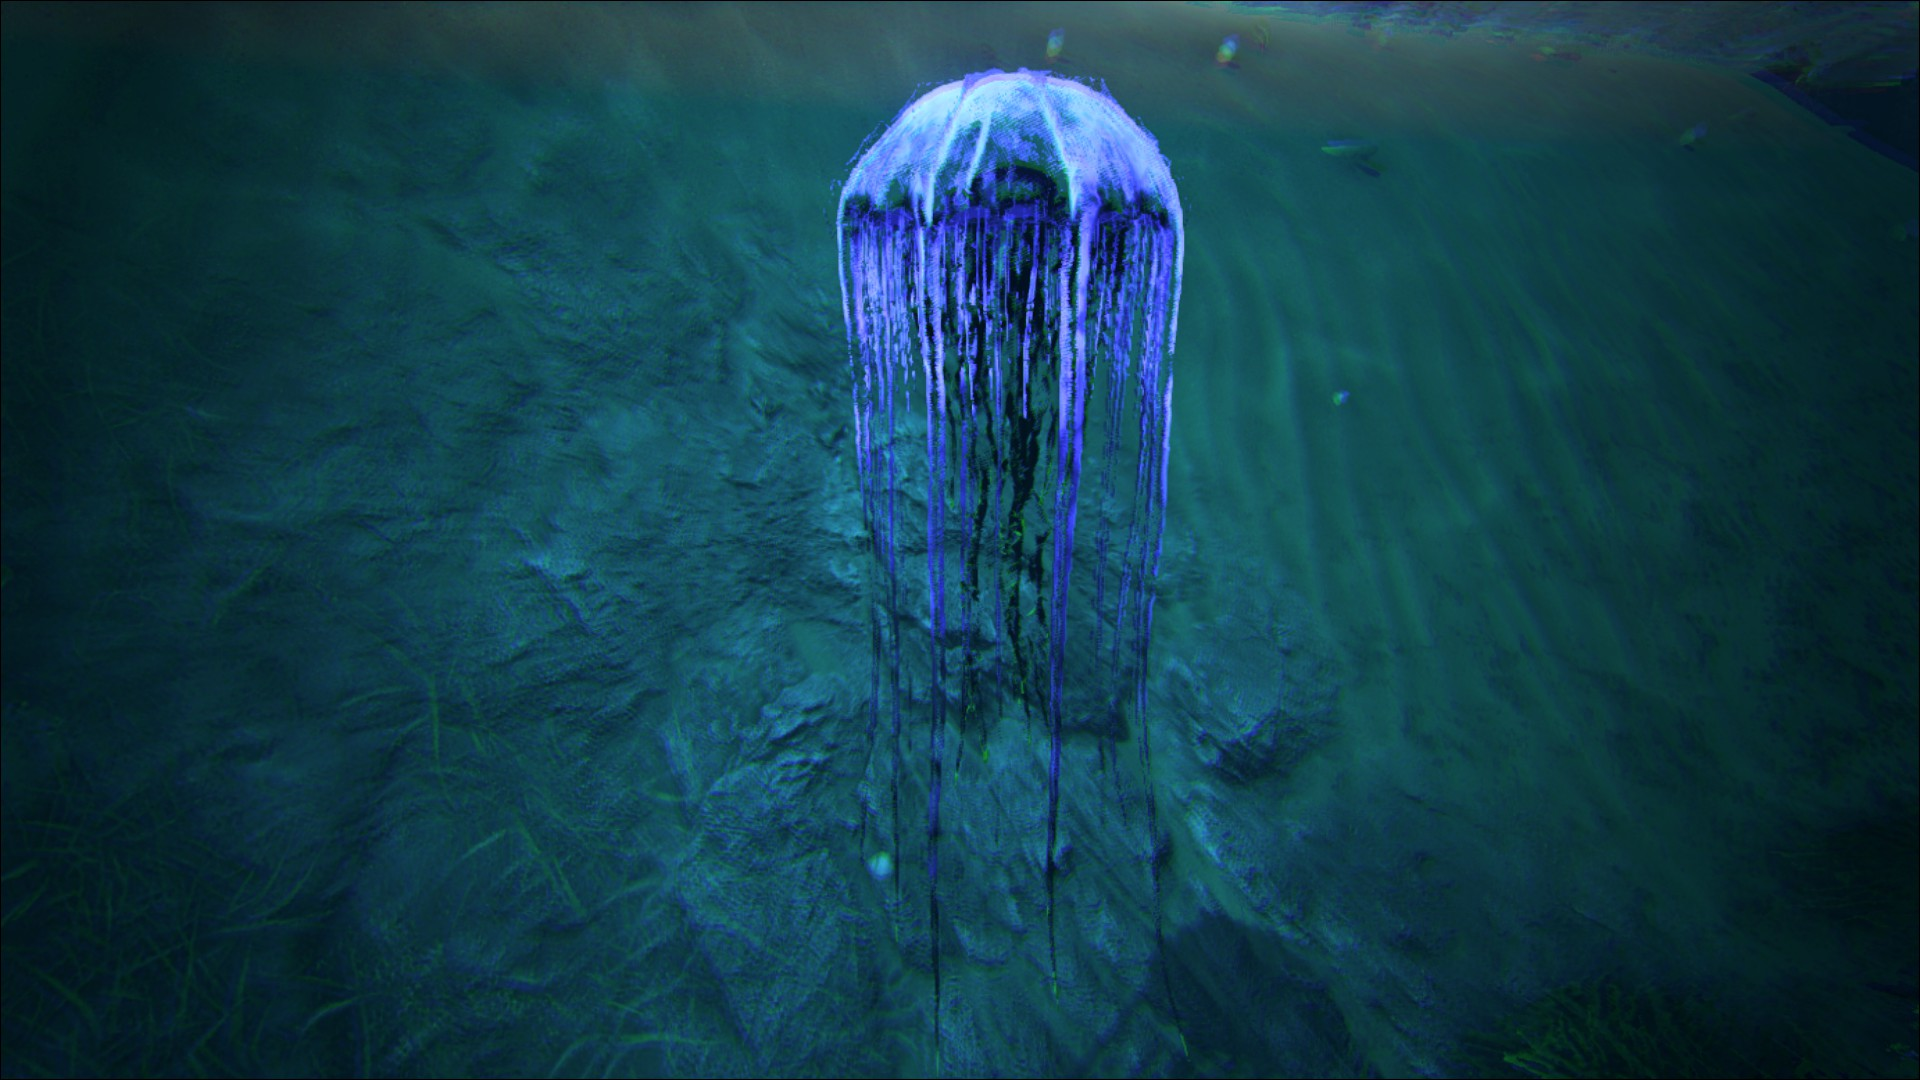 The Cnidaria Has No Changeable Color Regions